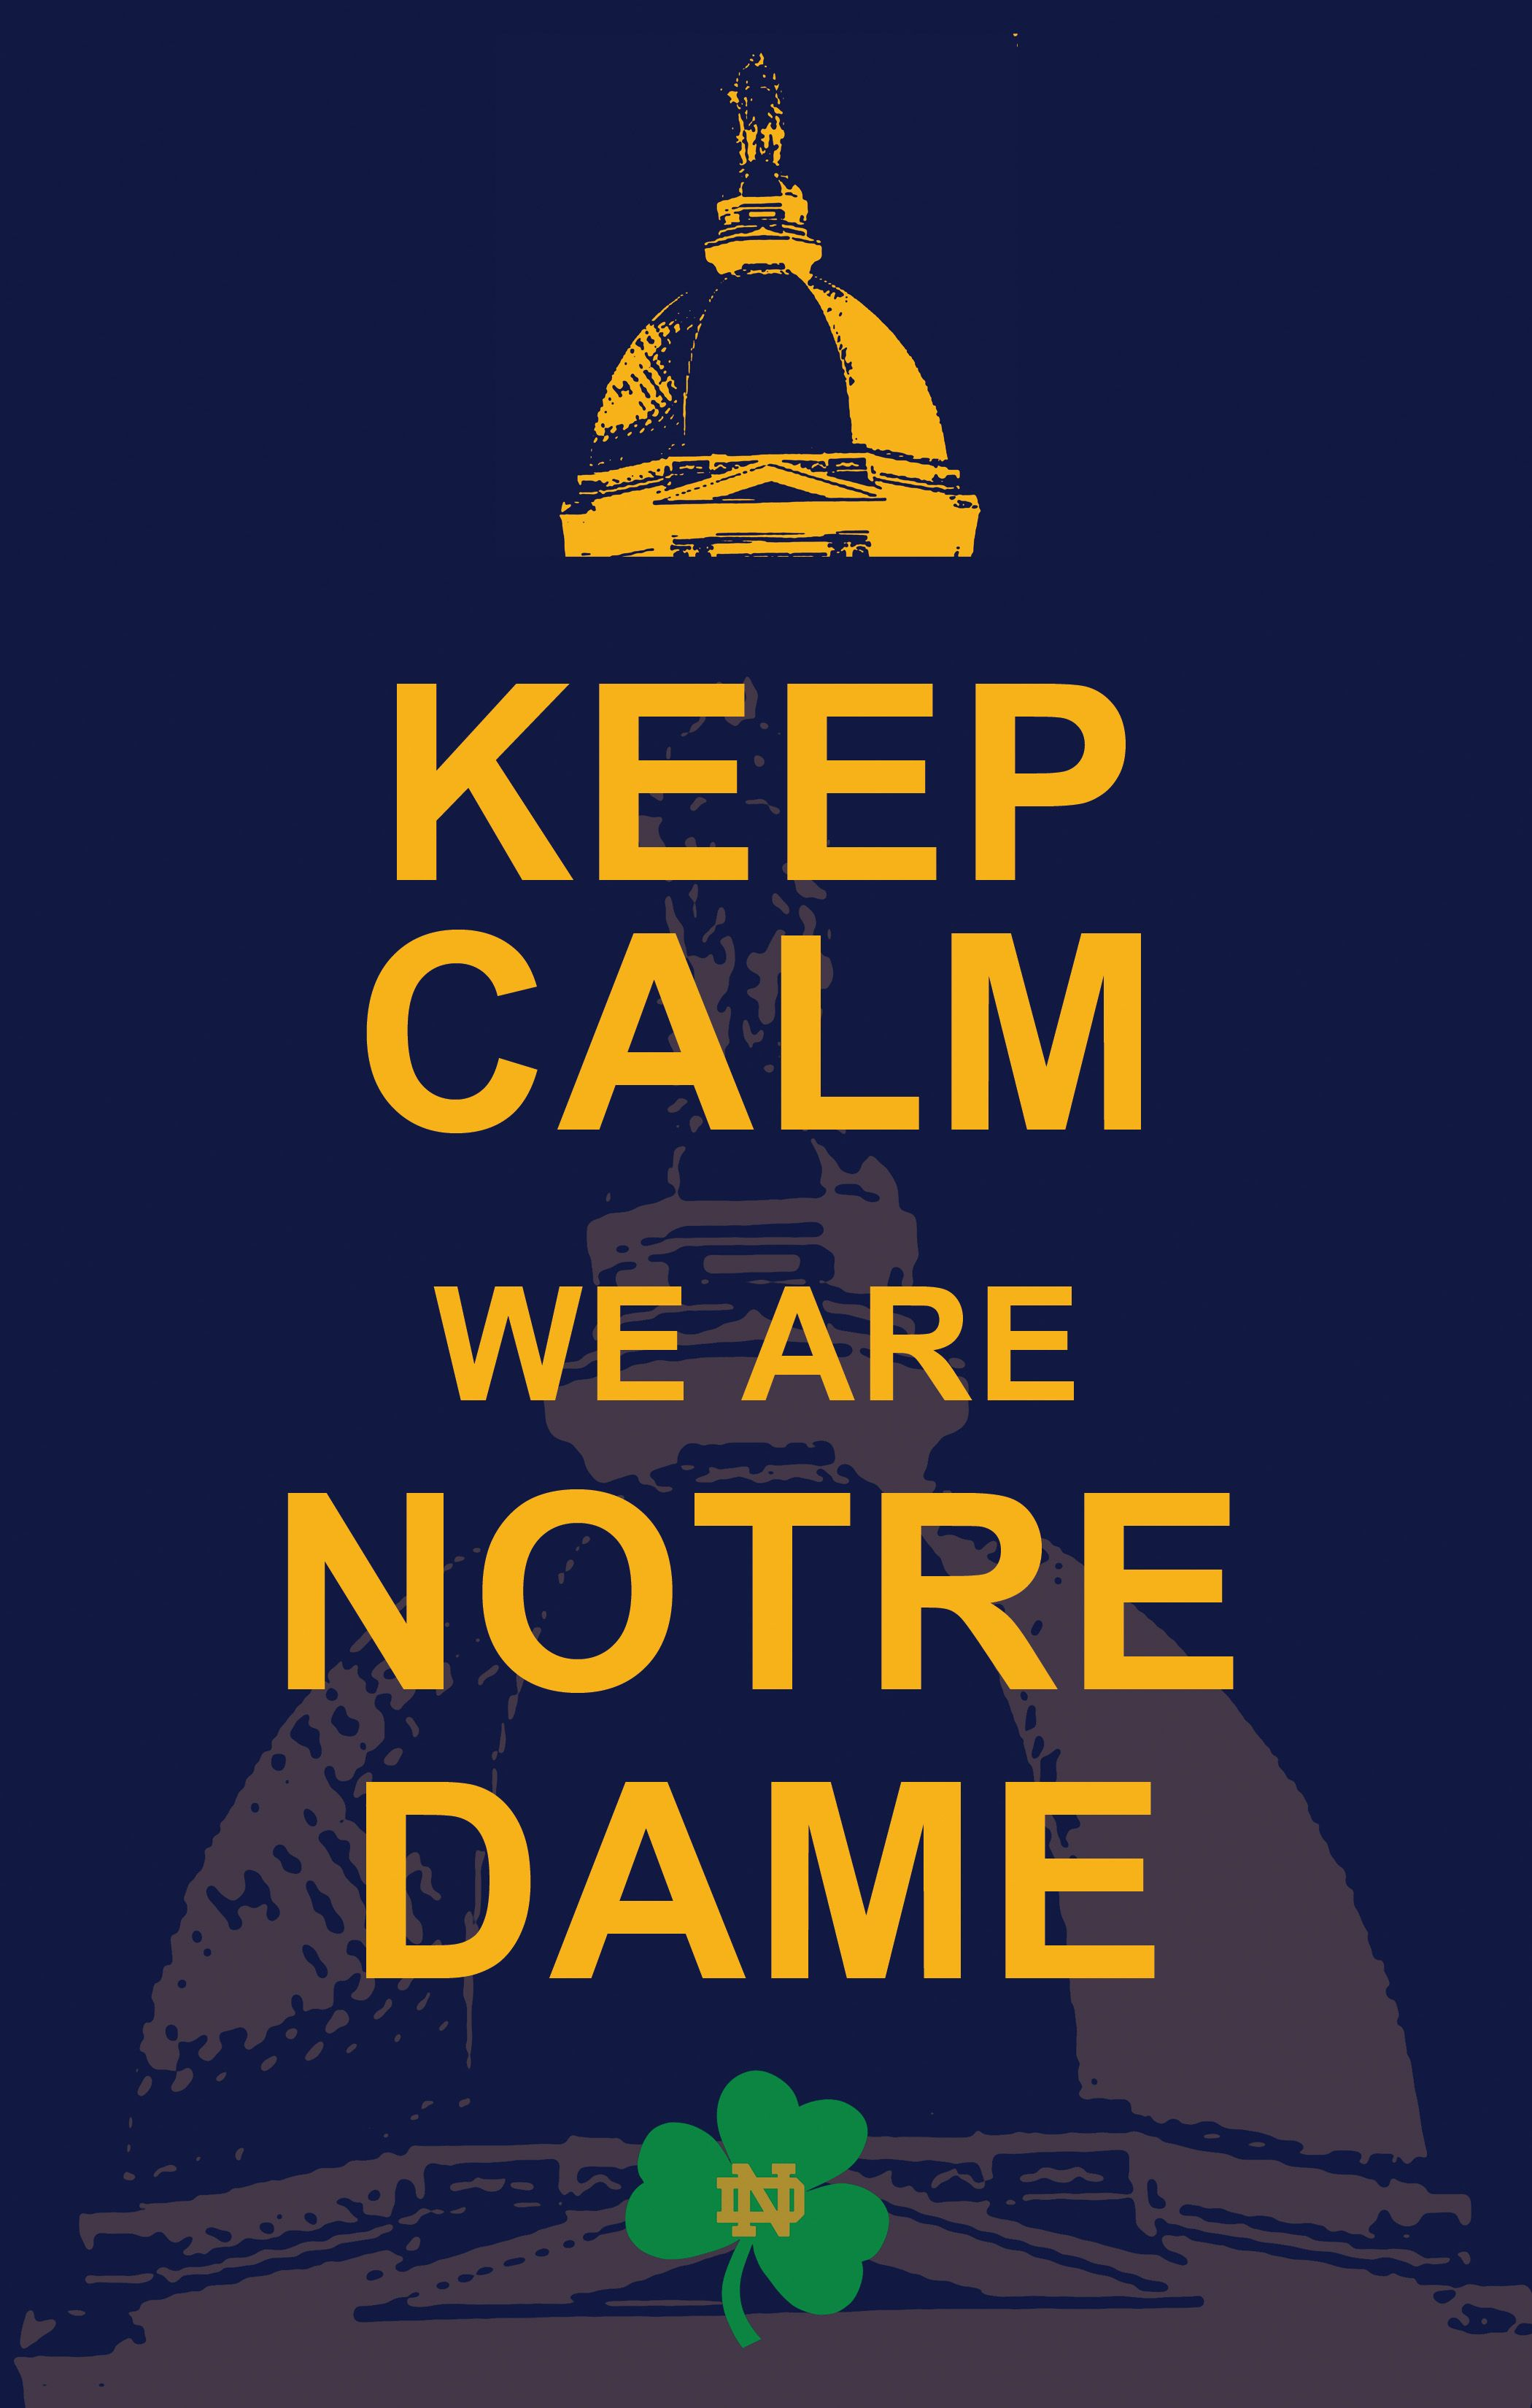 Yes nd irish fighting irish notre dame basketball - Notre dame football wallpaper ...